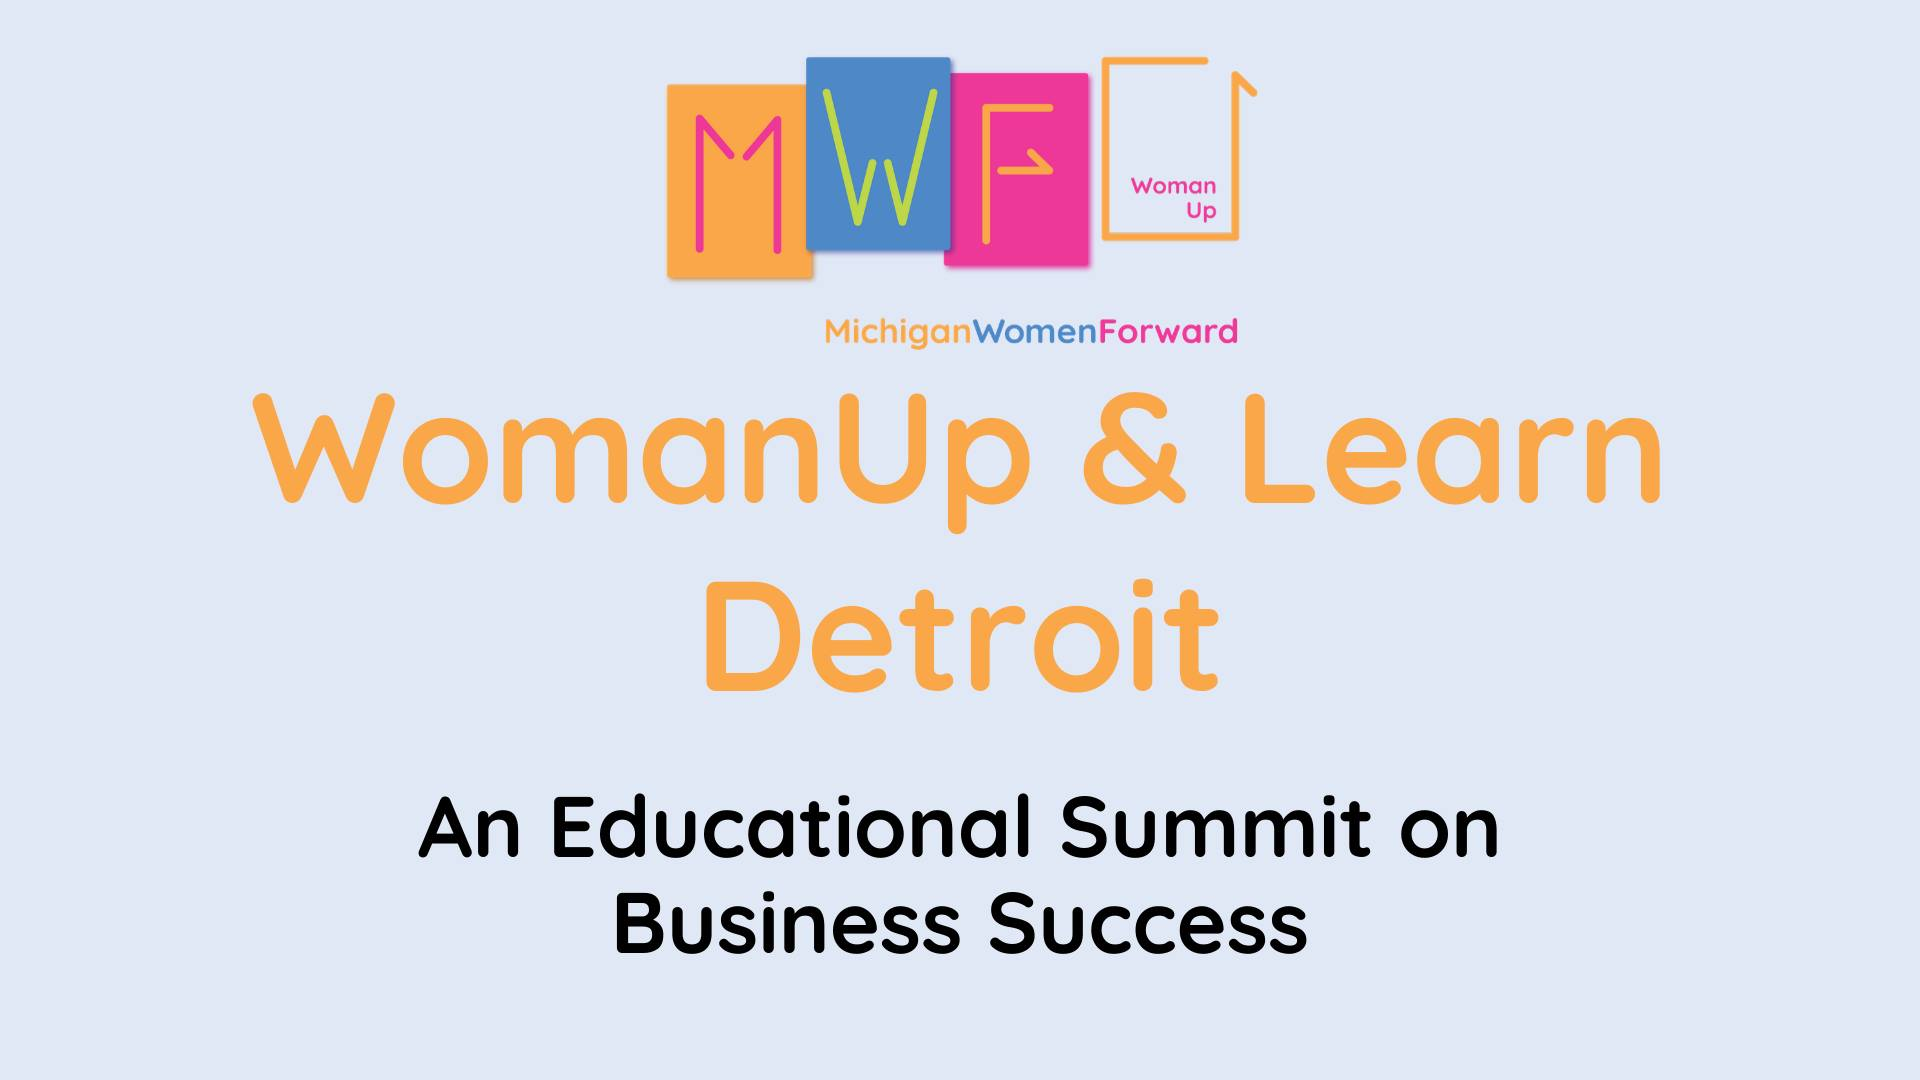 womanup & learn detroit